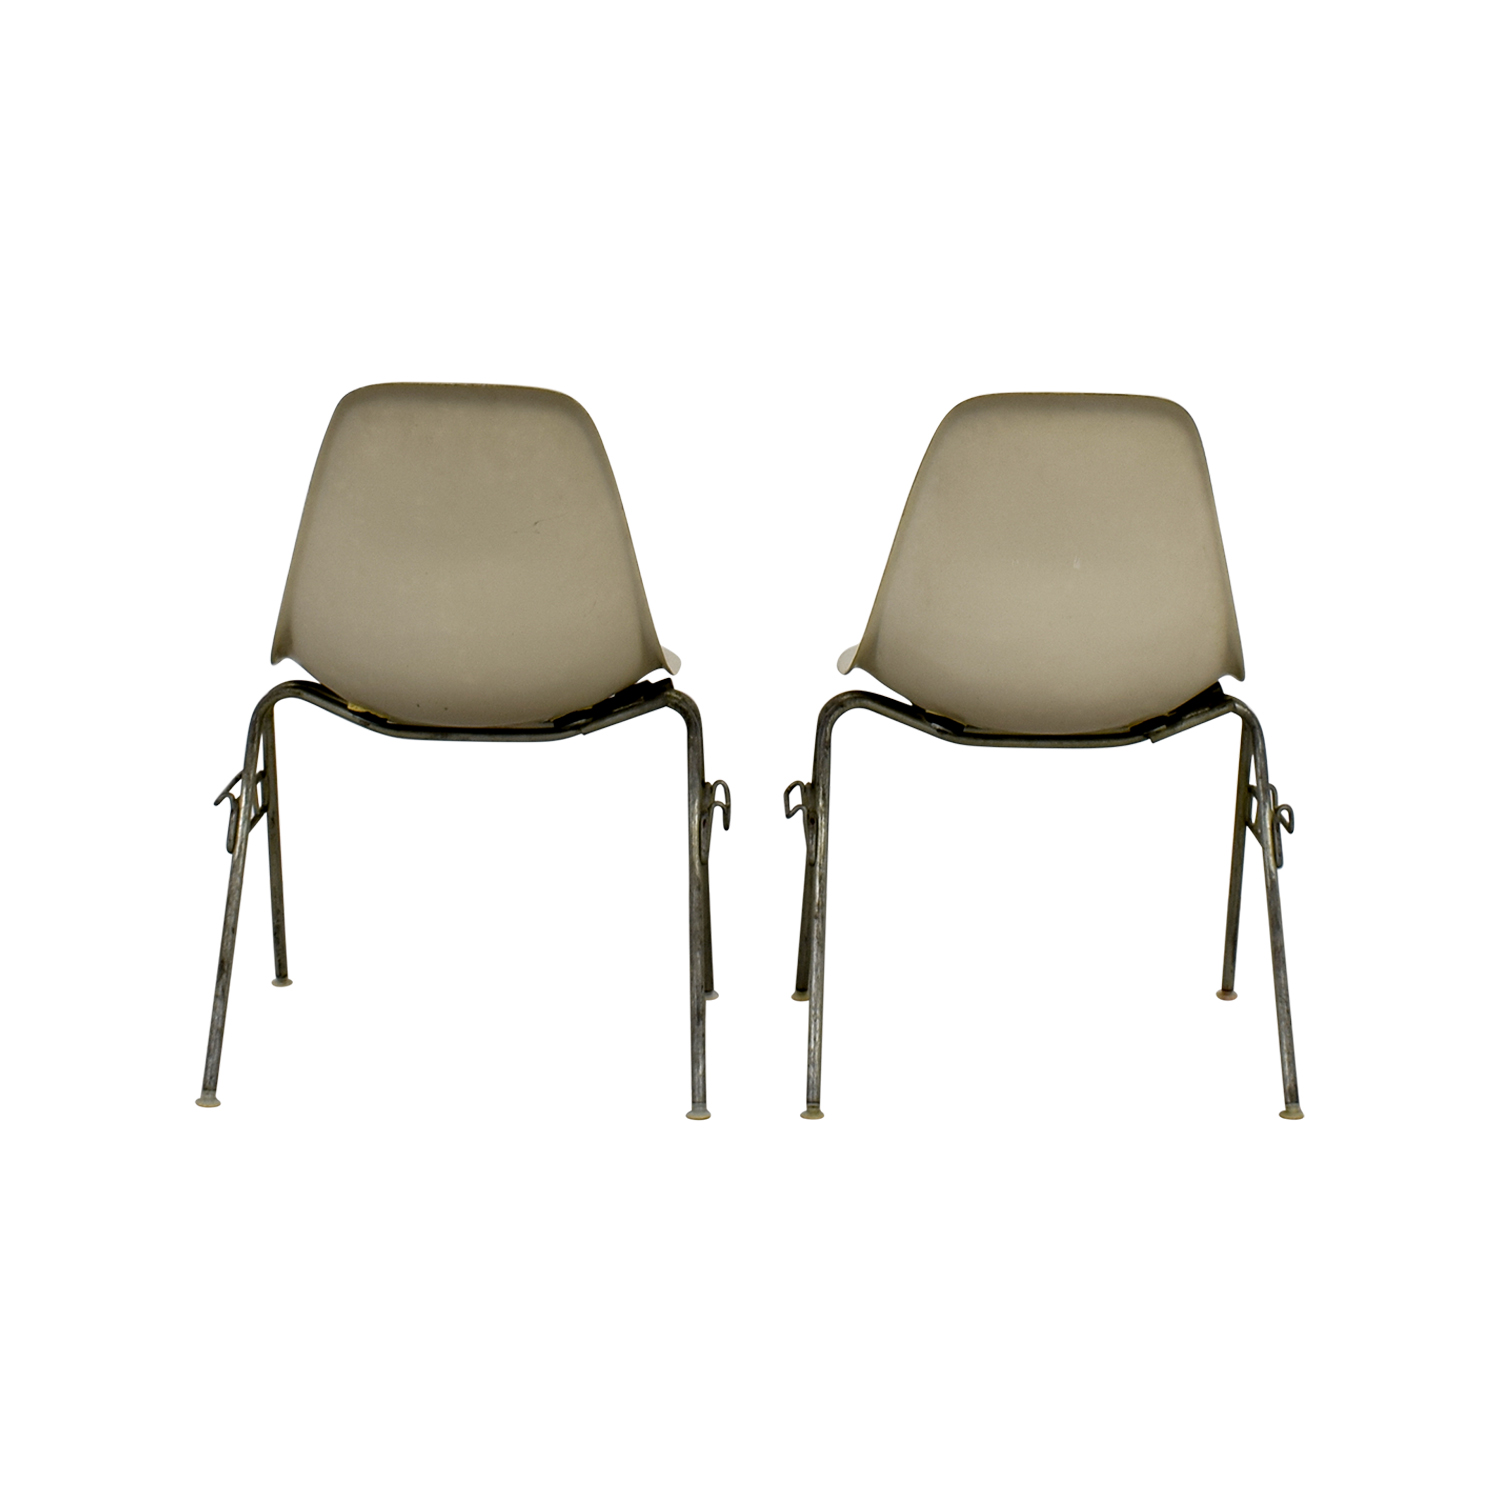 Herman Miller Herman Miller Eames Shell Chairs off white